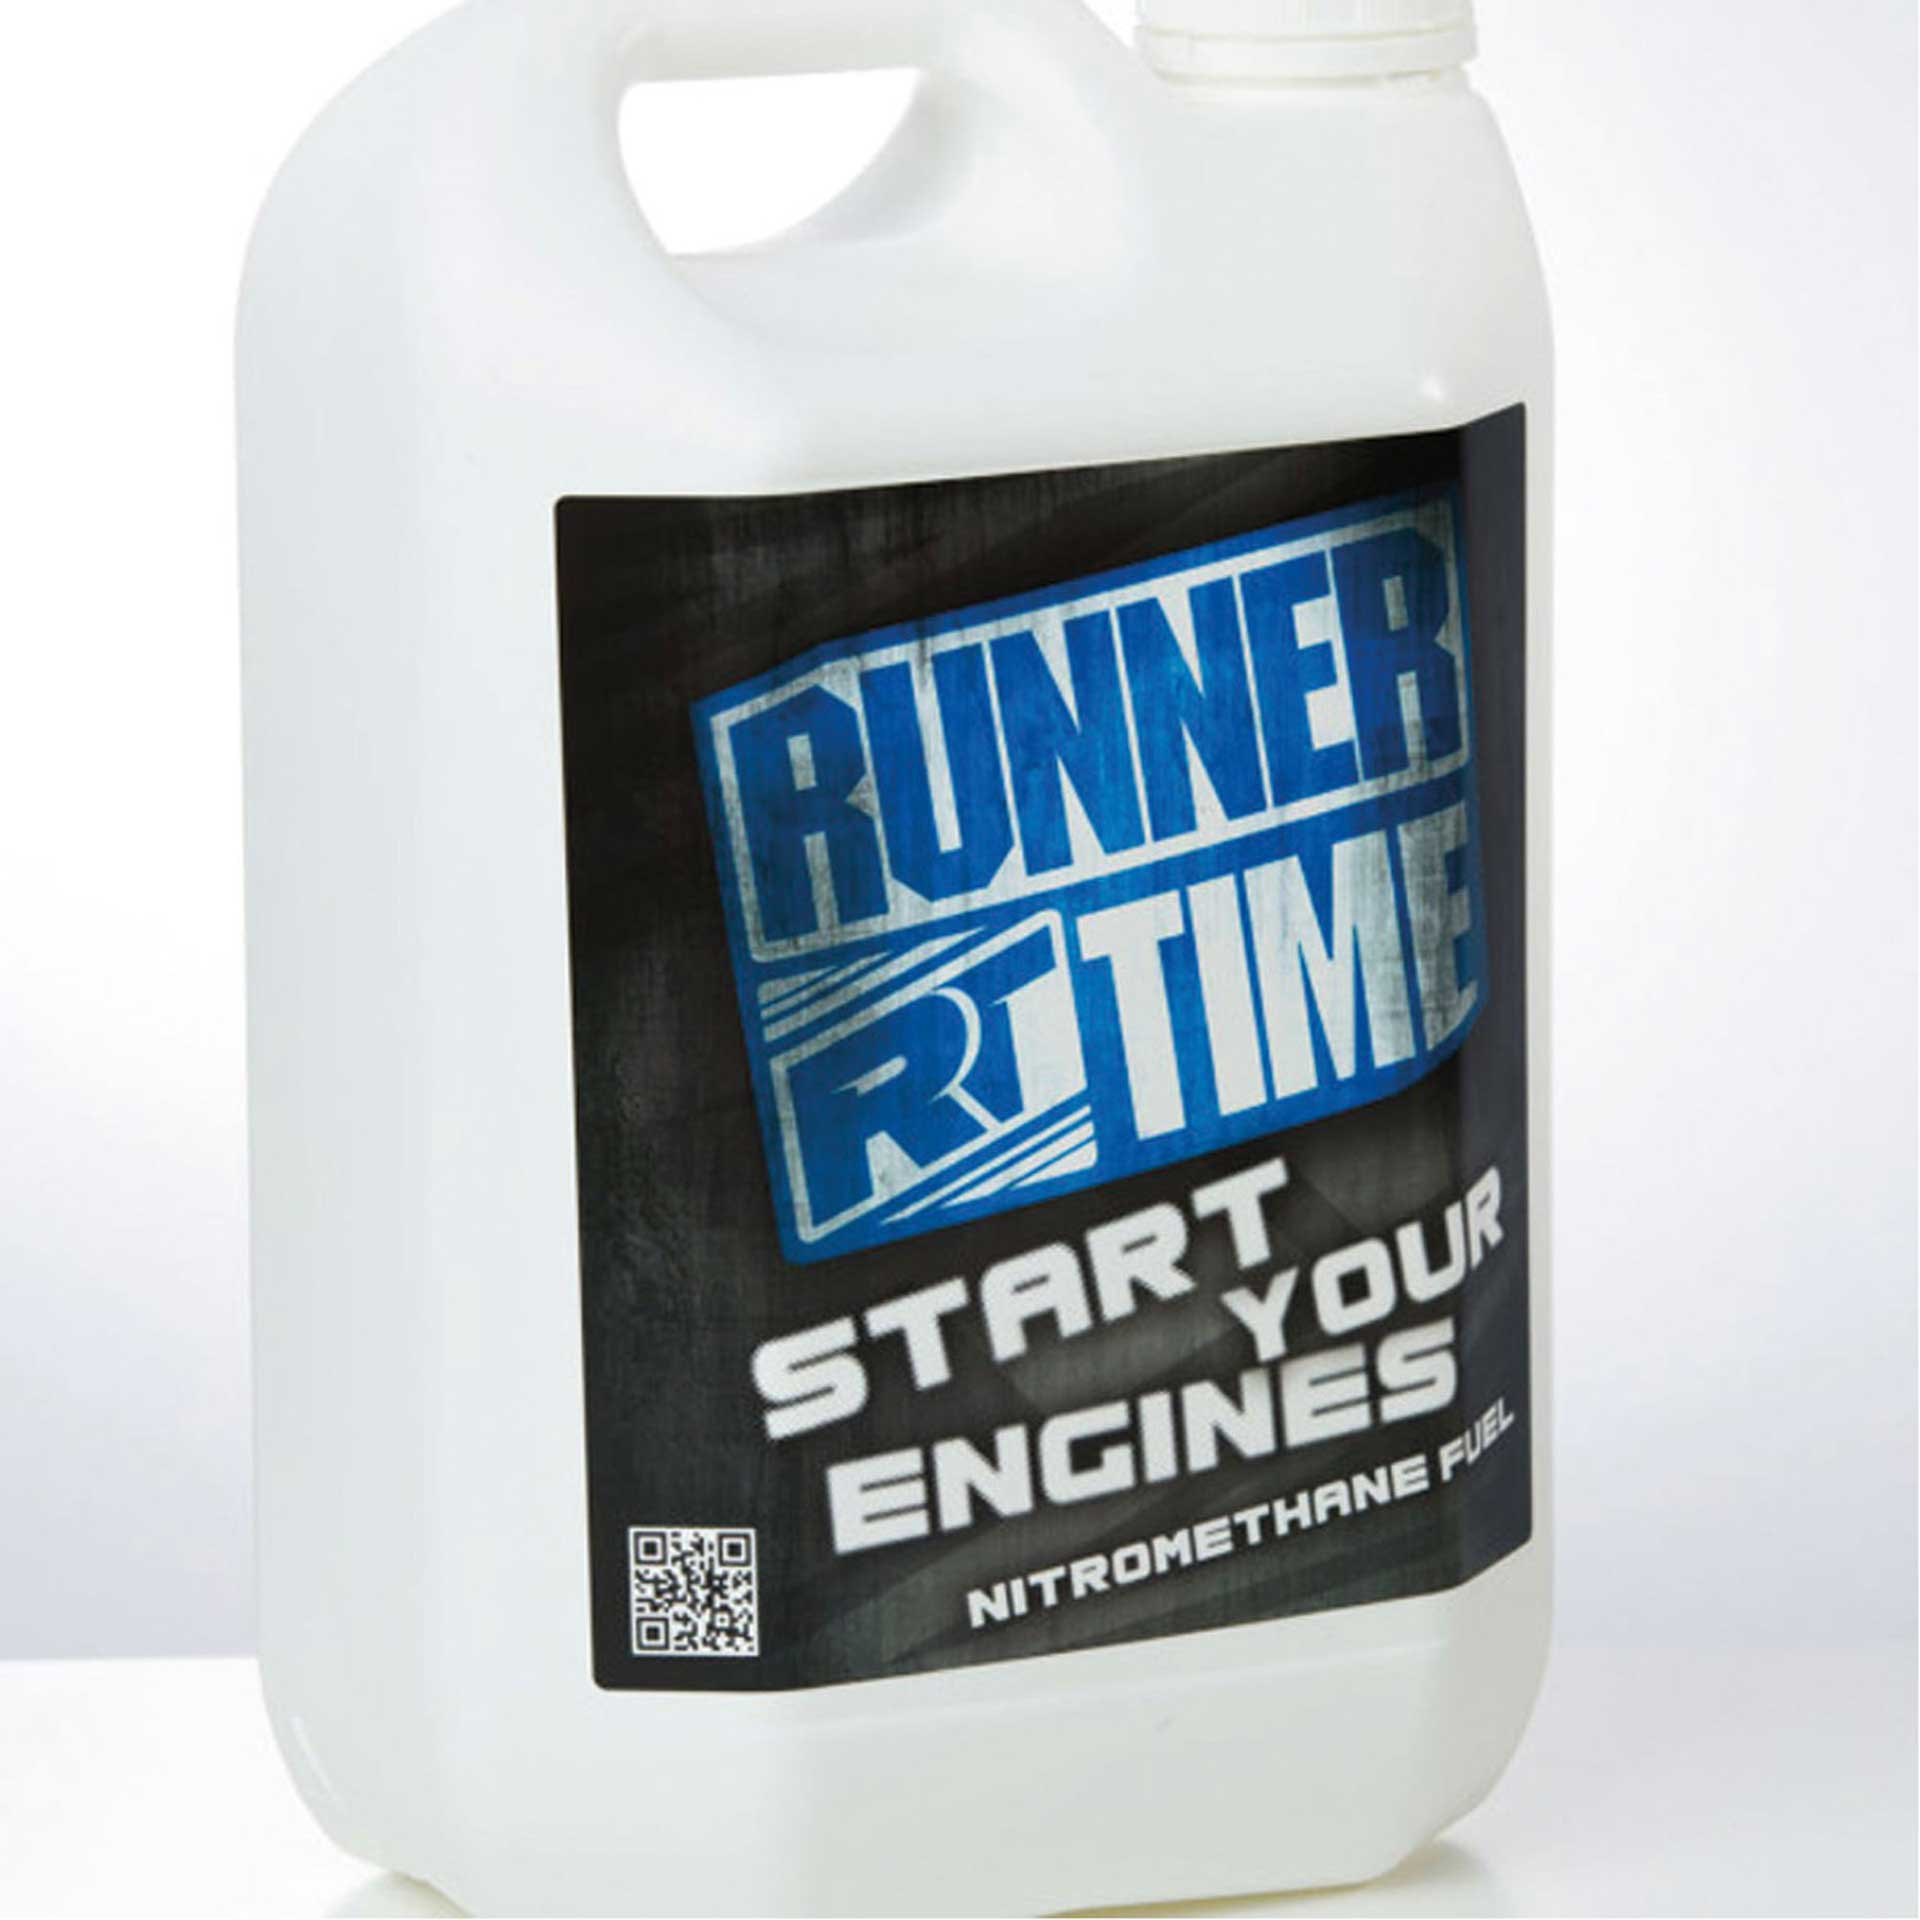 RUNNER TIME TOP 25% CAR SPRIT 5L 1/10 & 1/8 OFF ROAD, ON ROAD, I.F.M.A.R. WORLD CHAM